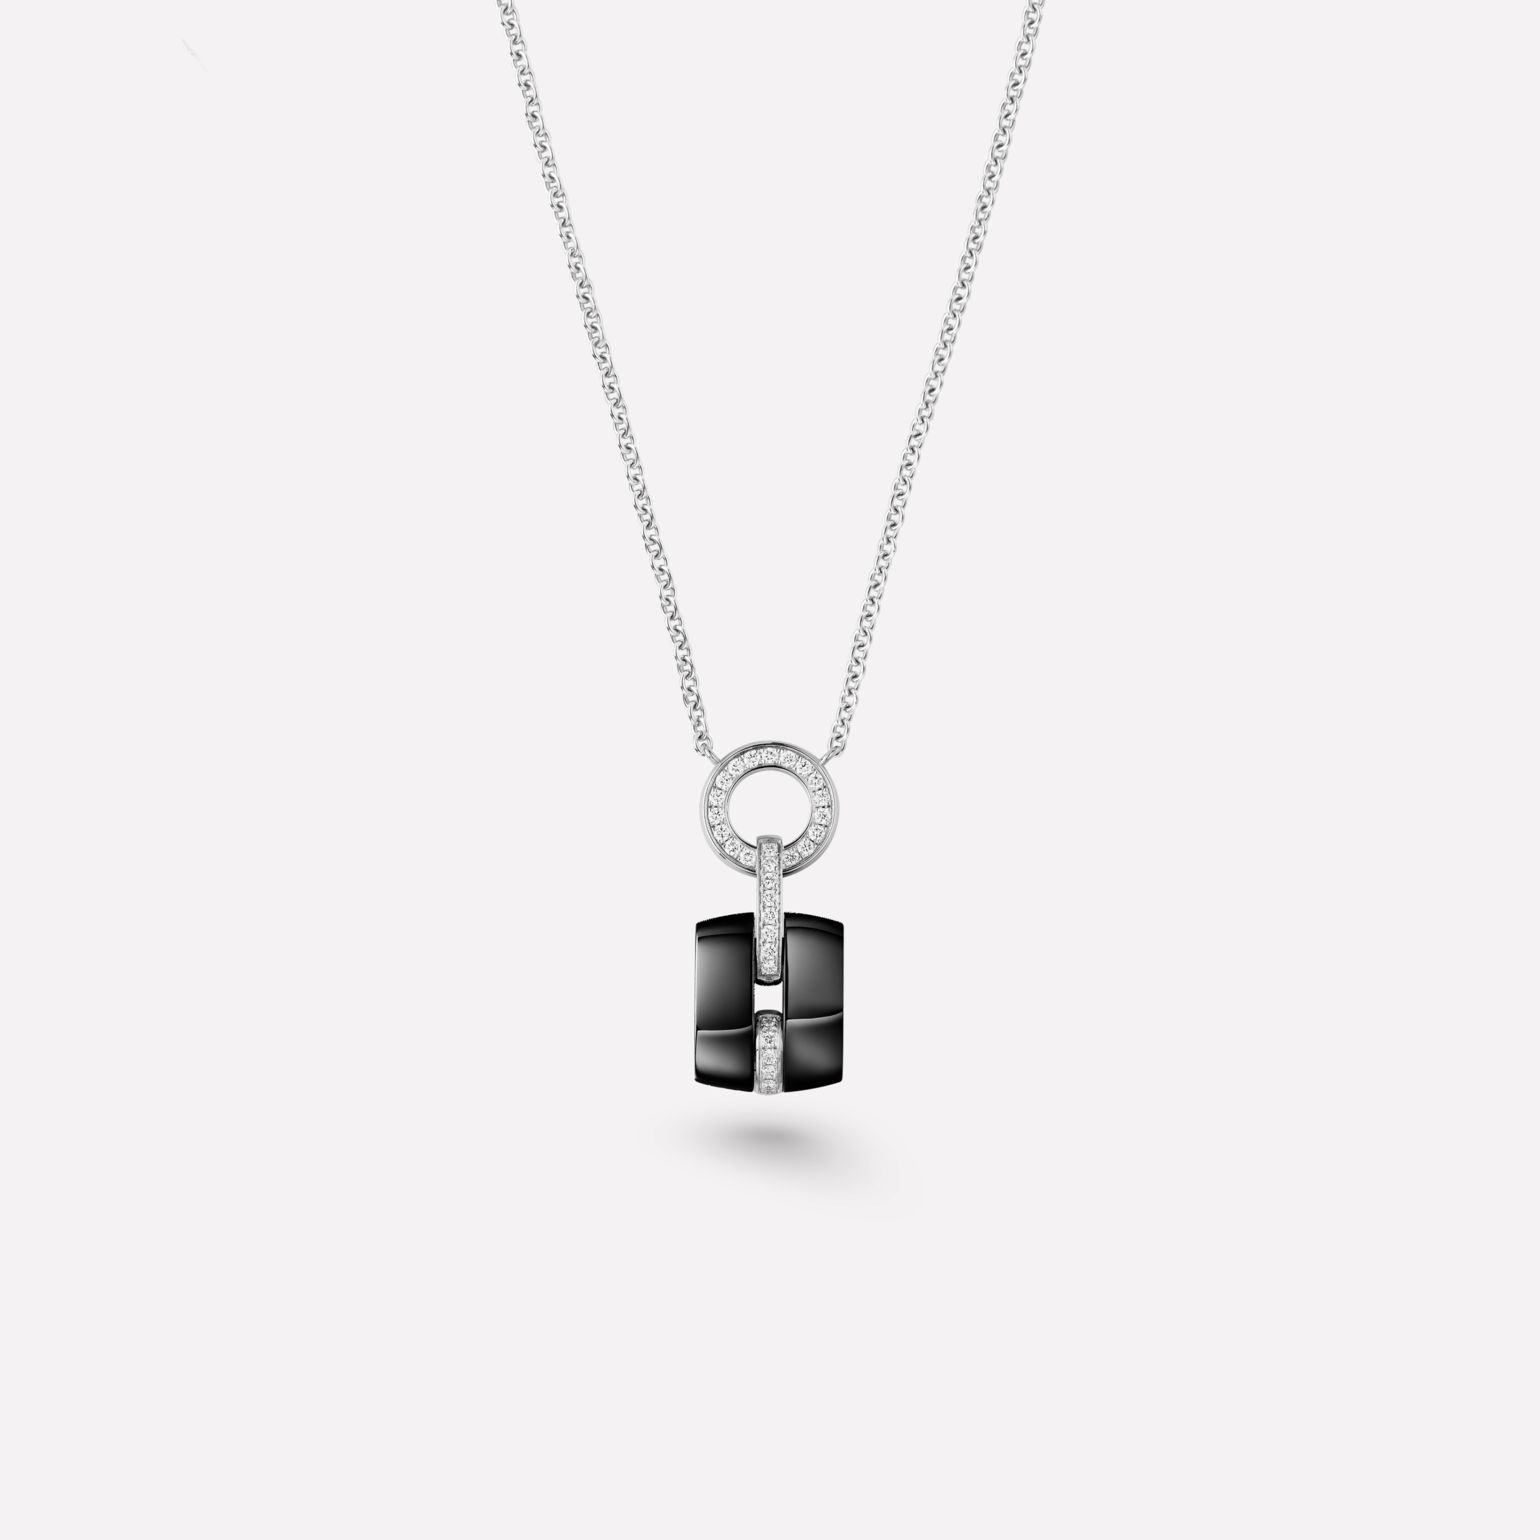 Ultra Necklace Ultra necklace in black ceramic, 18K white gold and diamonds